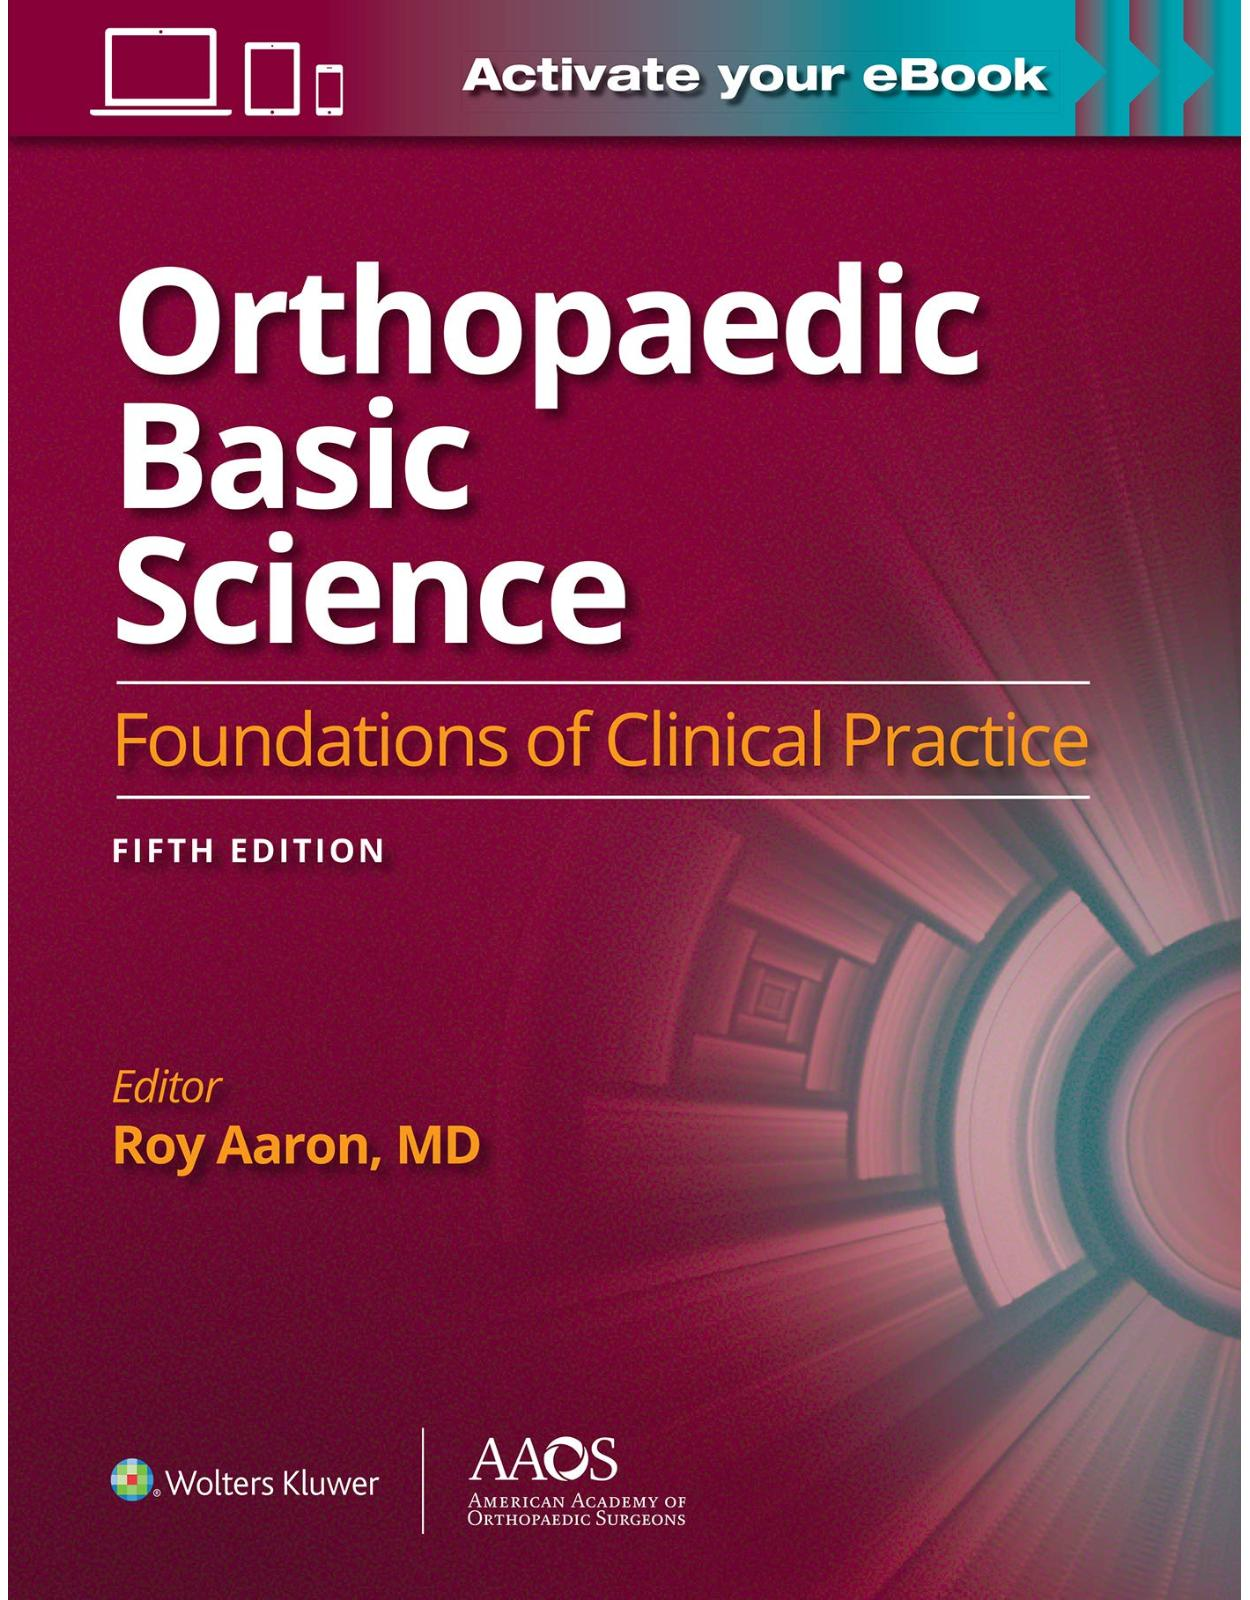 Orthopaedic Basic Science: Foundations of Clinical Practice 5: Print + eBook with Multimedia